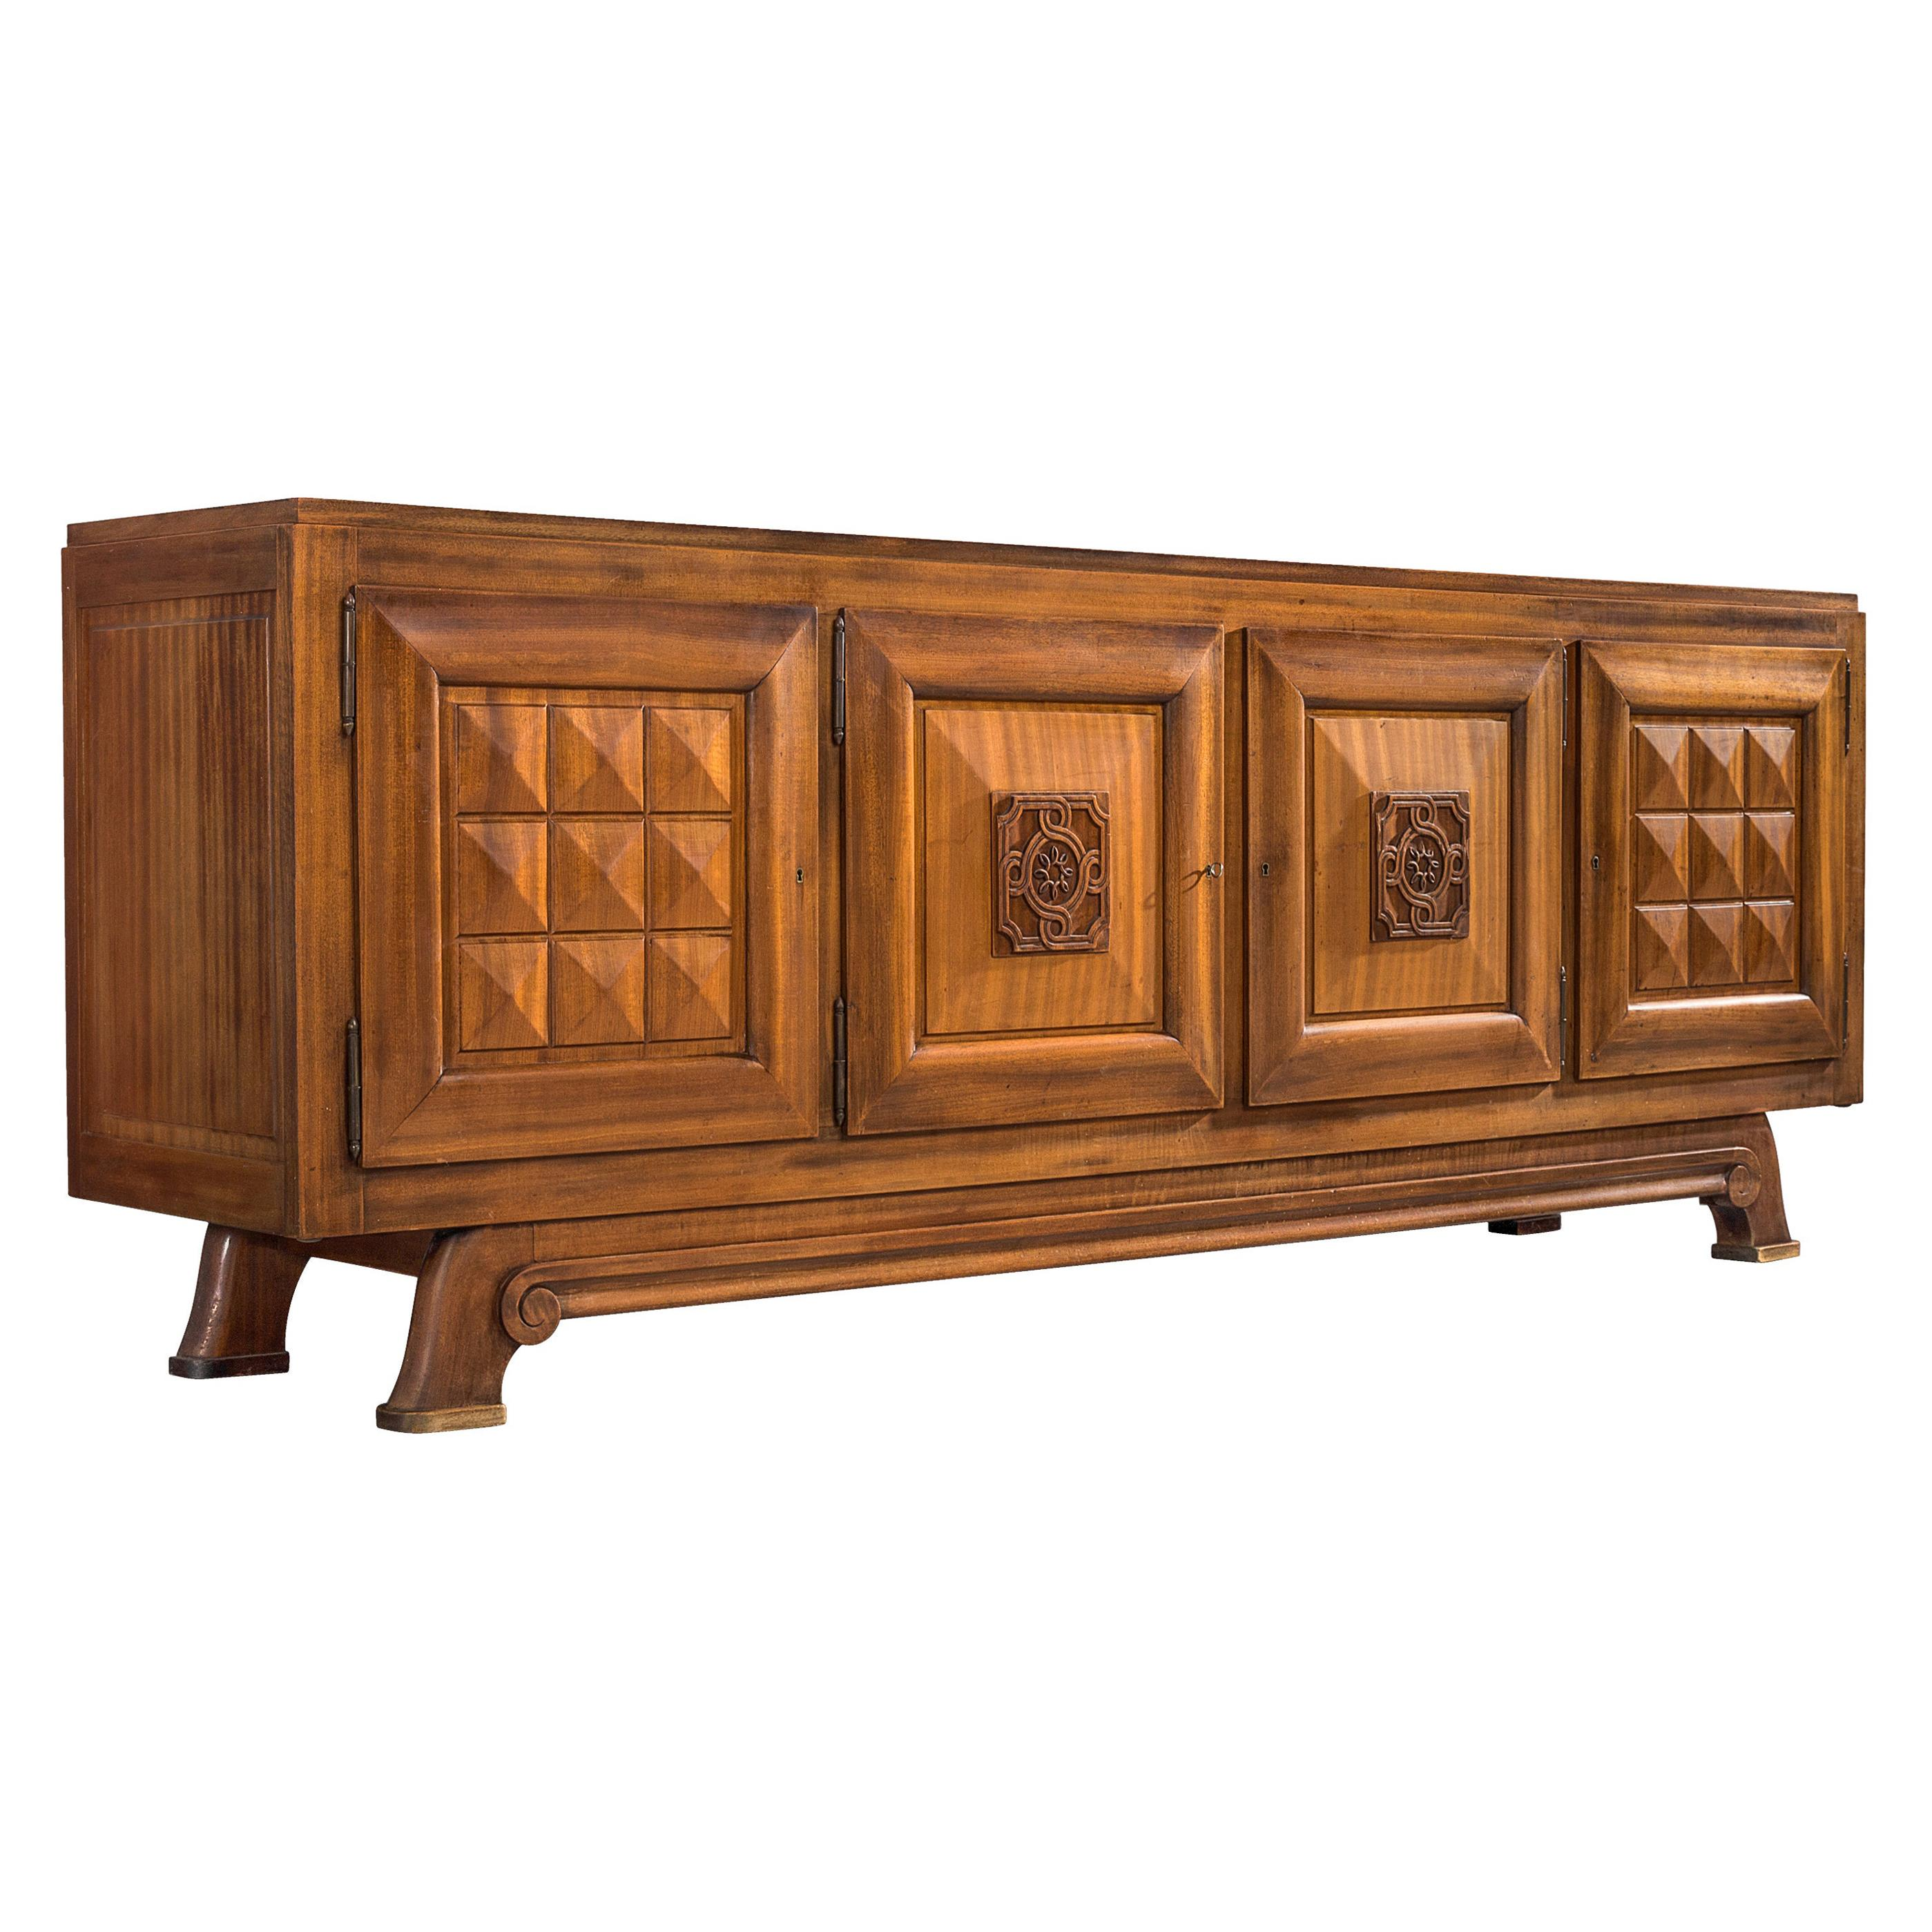 French Art Deco Sideboard in Mahogany